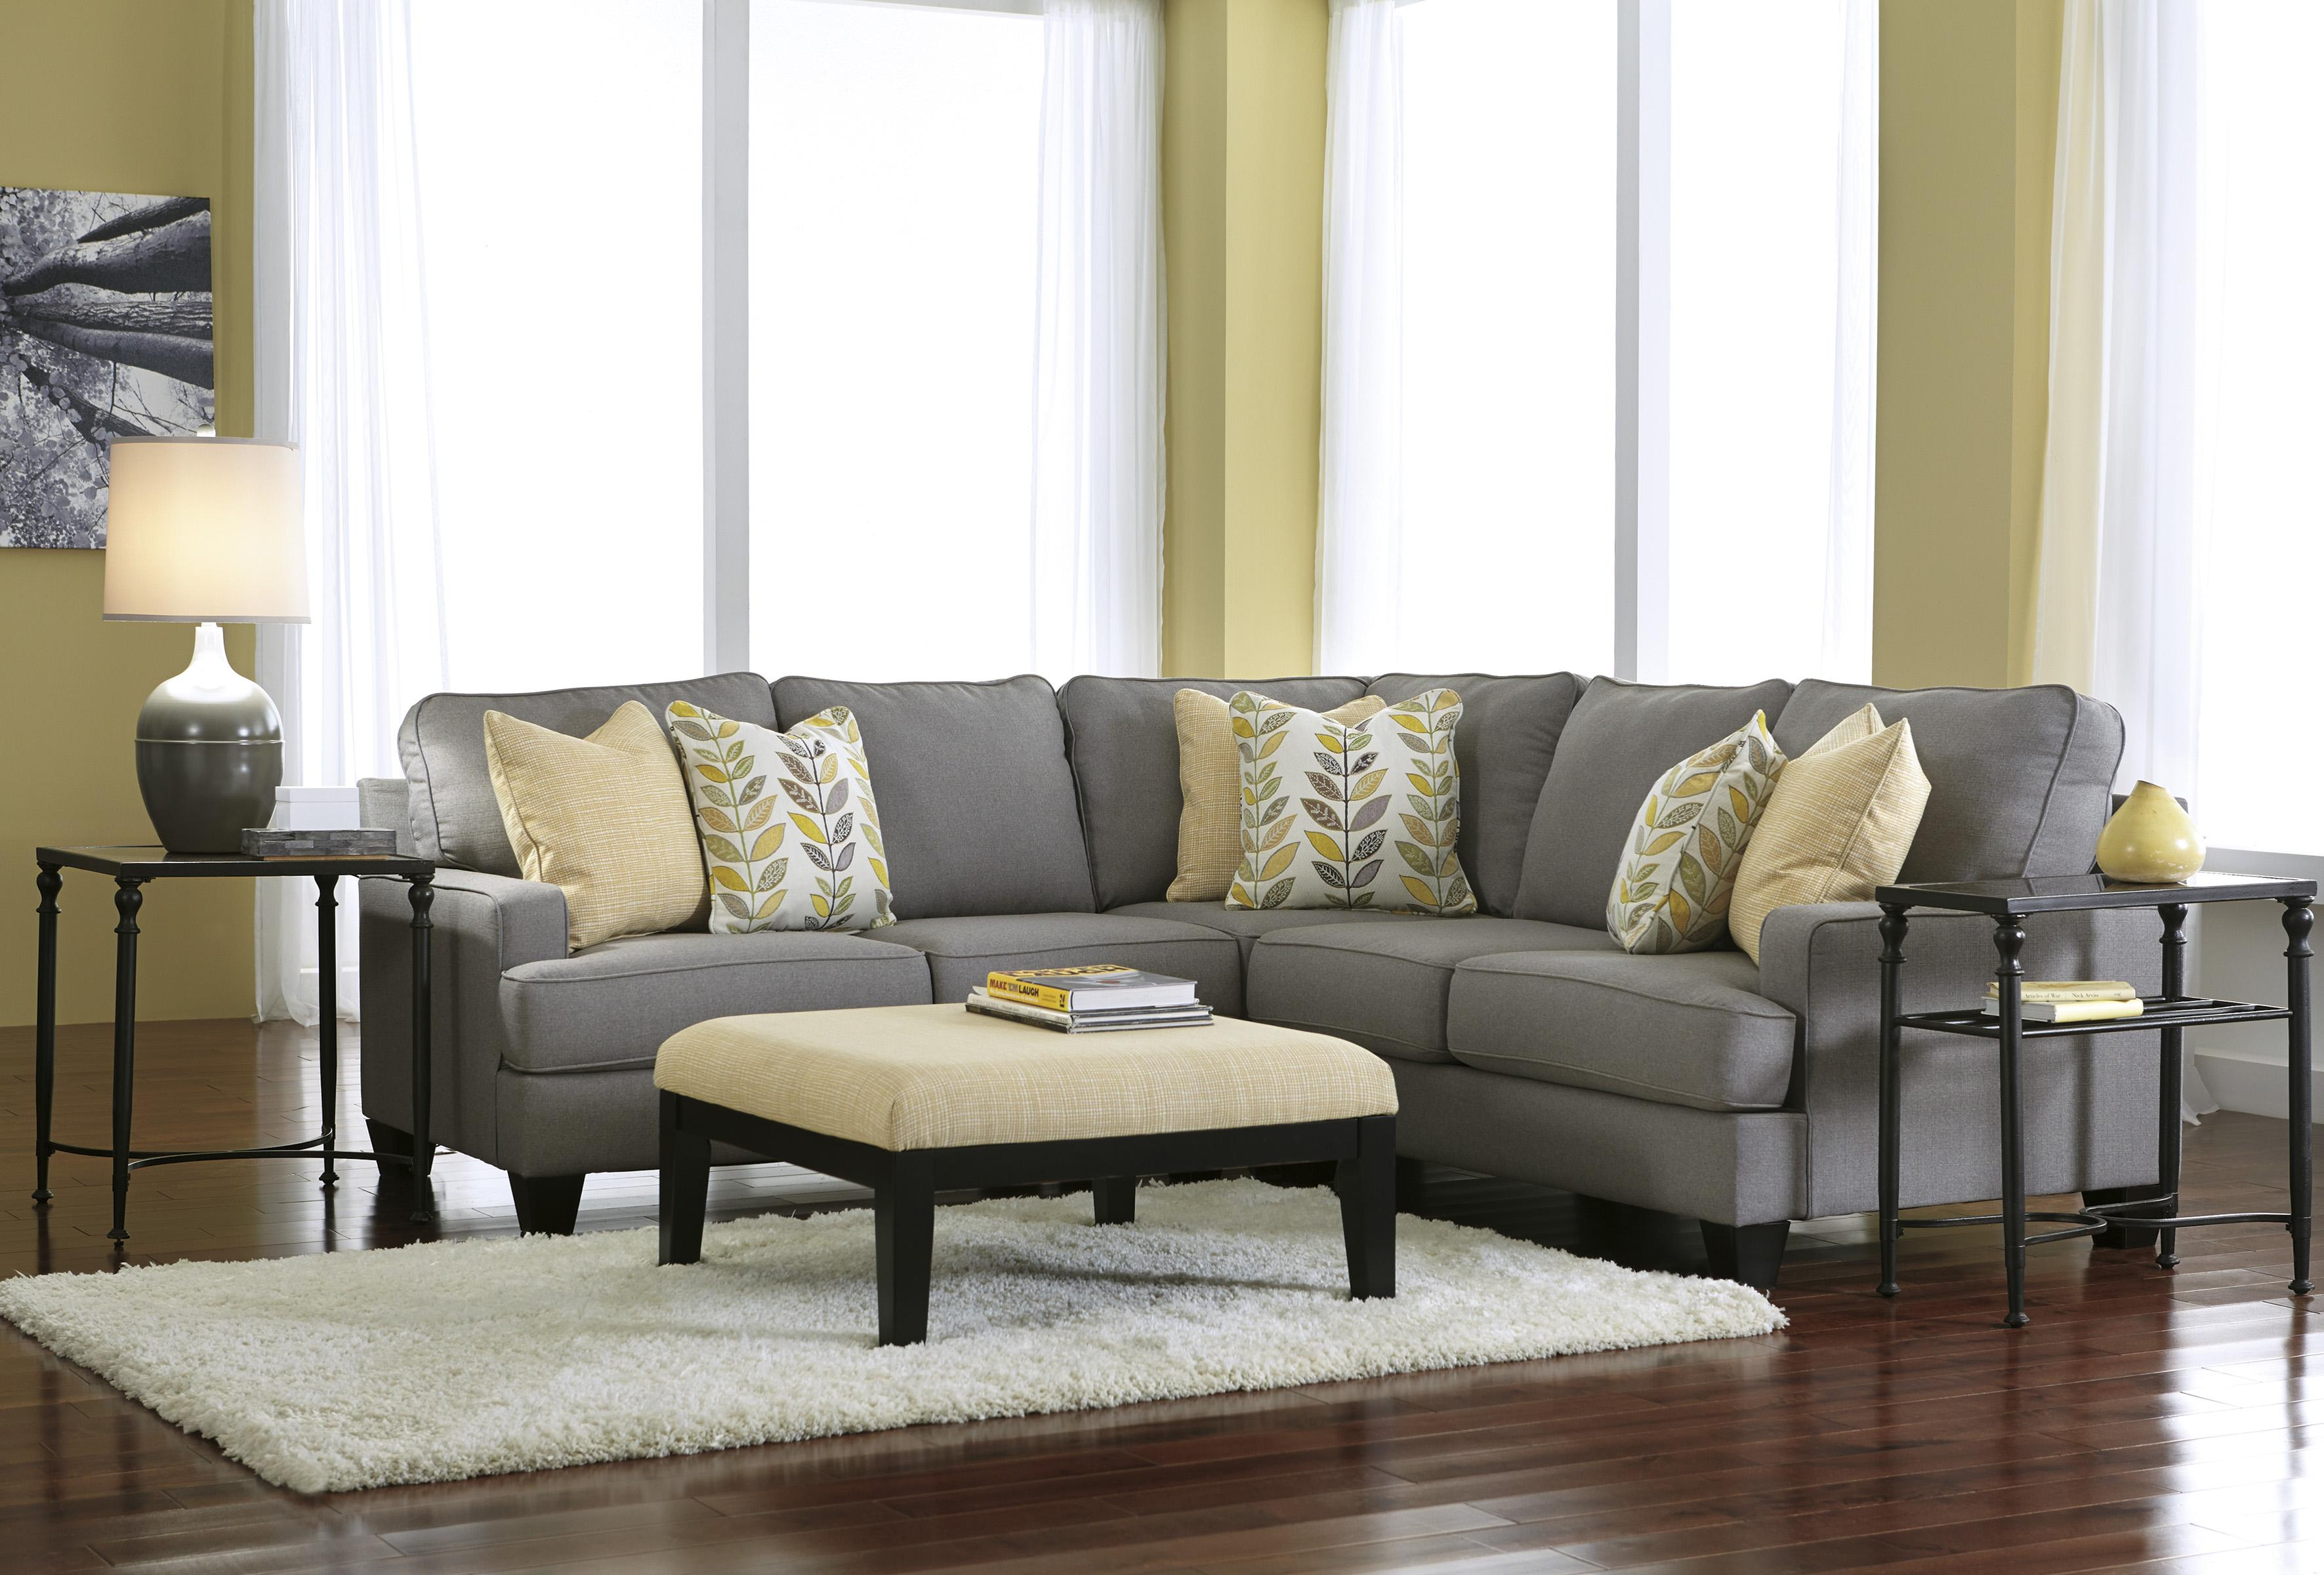 Chamberly Alloy Stationary Living Room Group By Signature Design By Ashley At John V Schultz Furniture